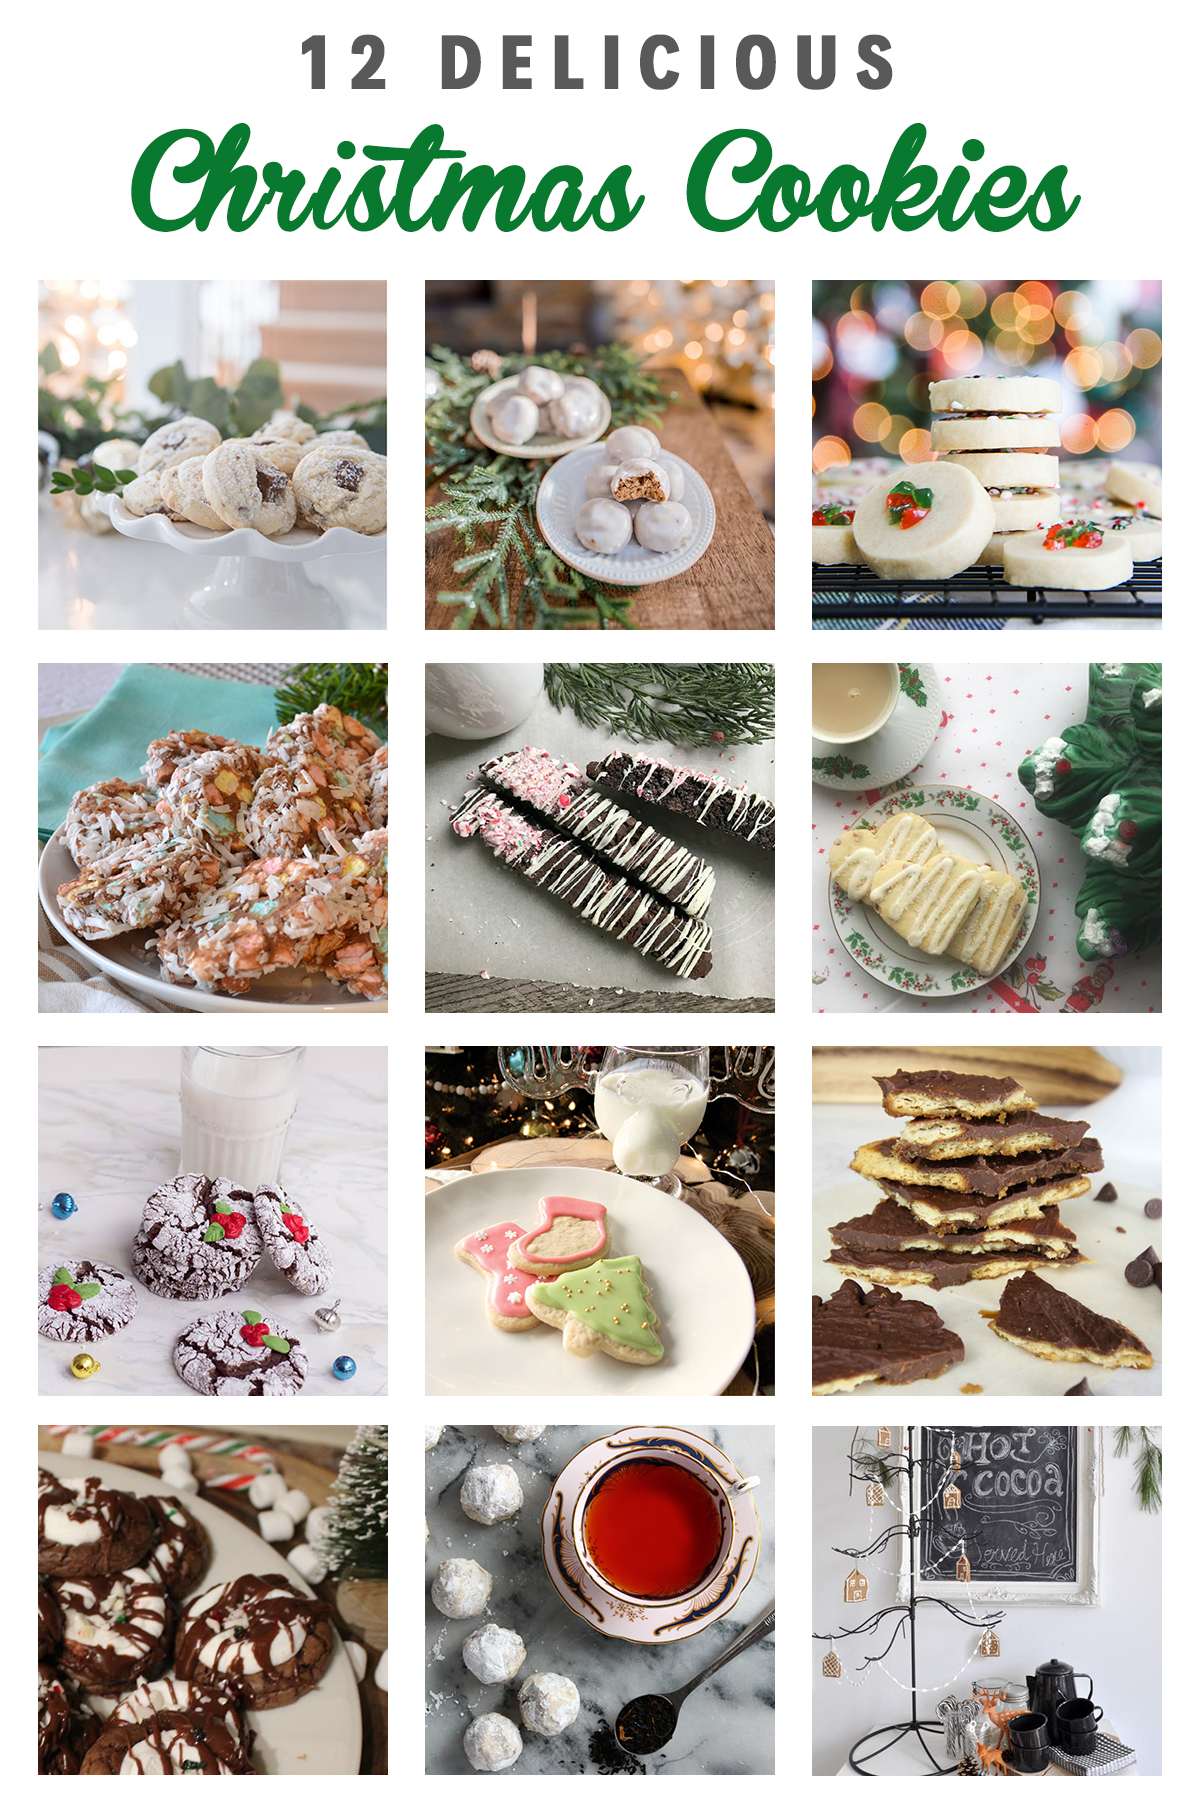 12 Delicious Christmas Cookies